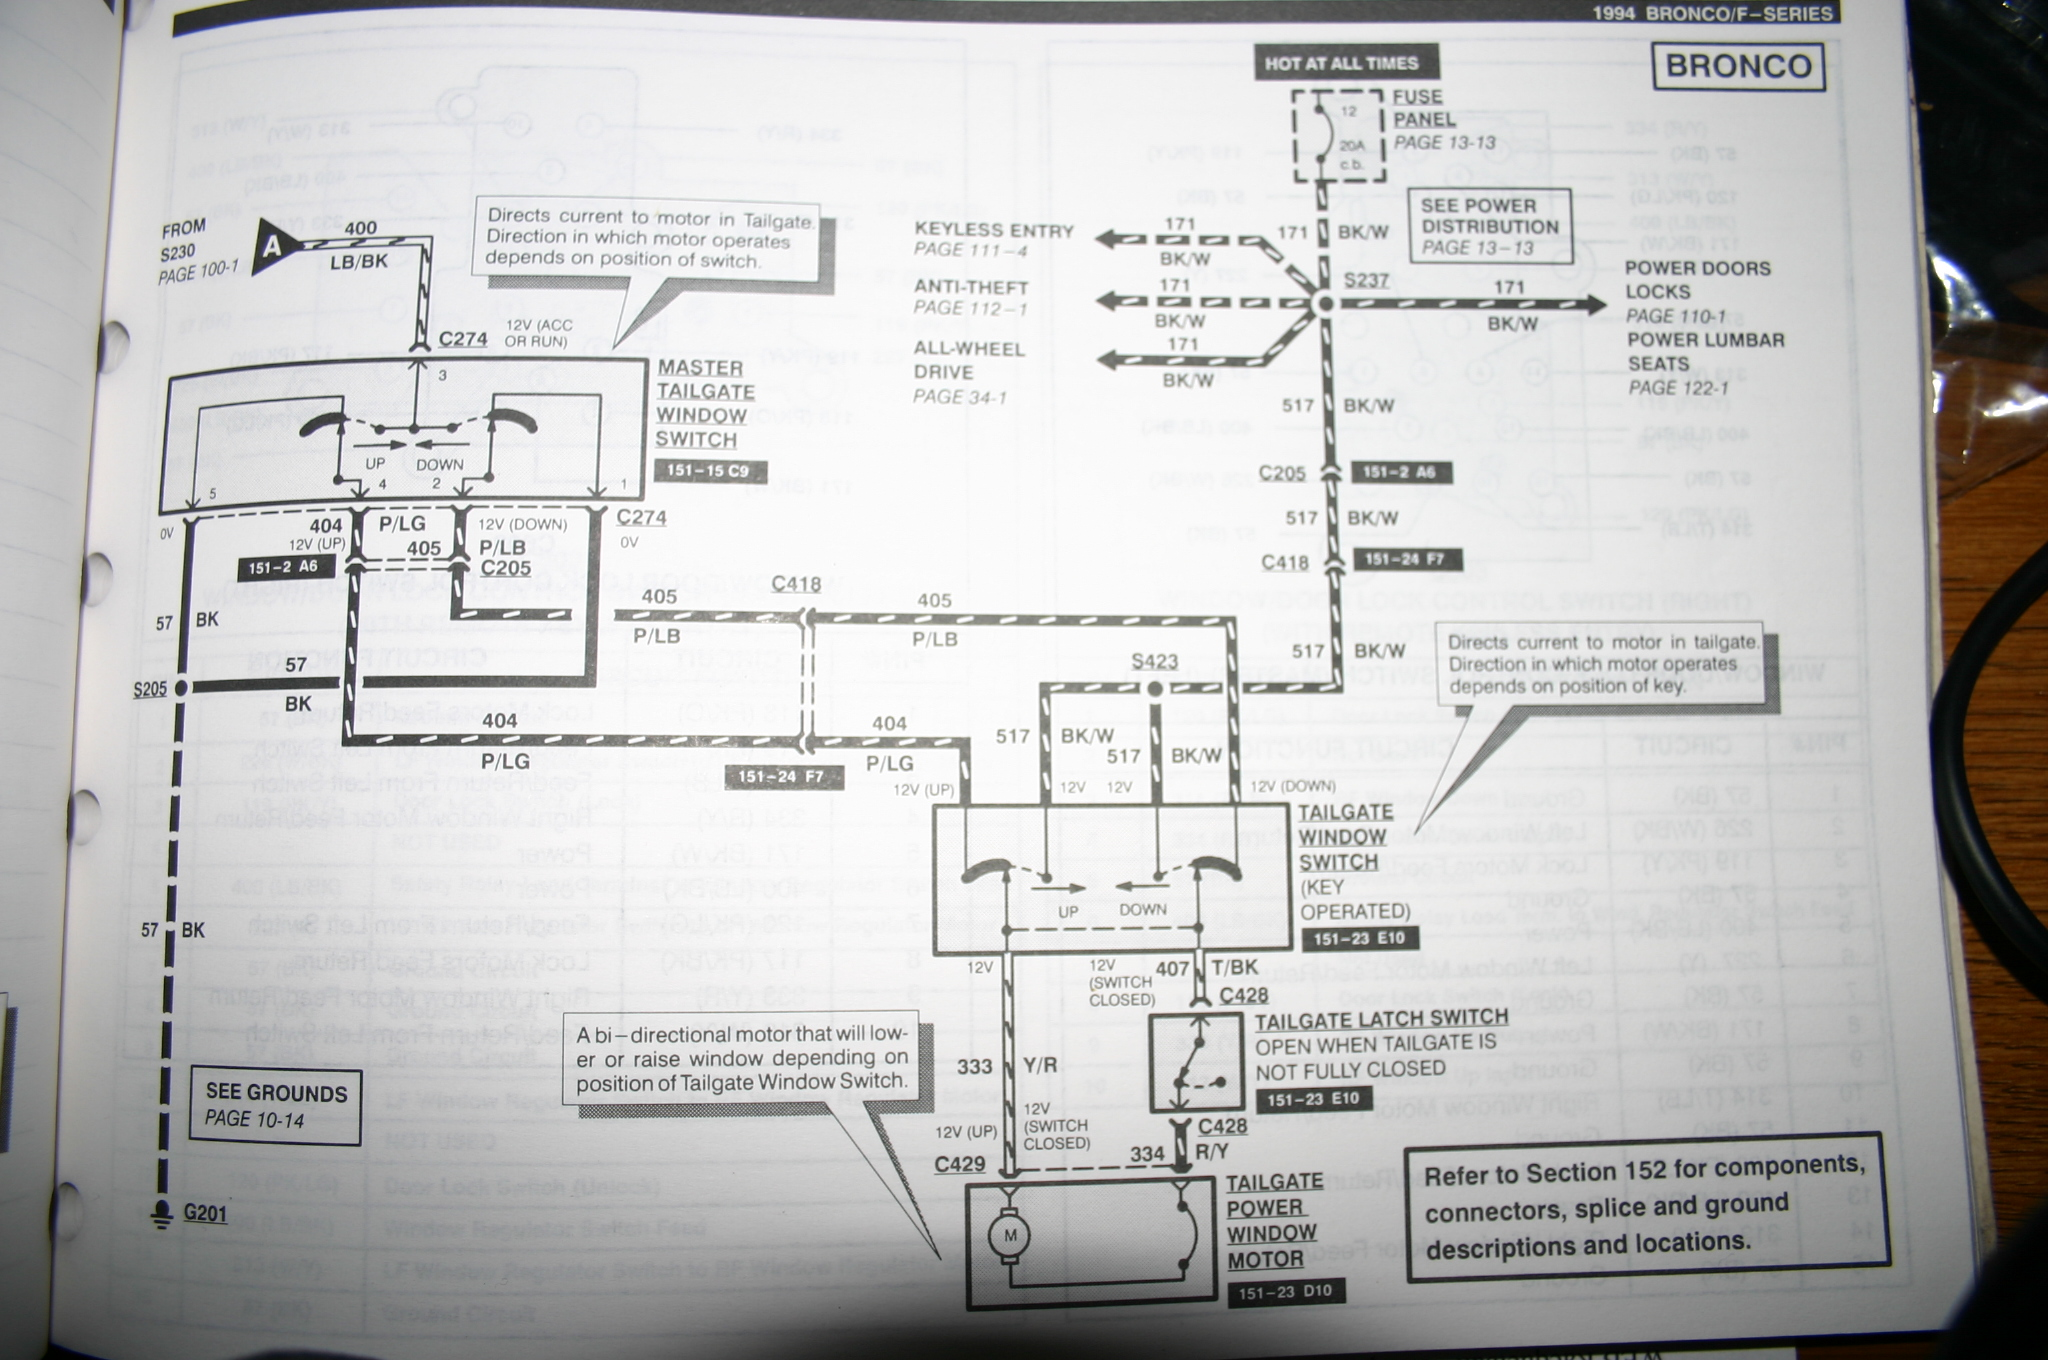 1990 ford bronco wiring diagram 97 cherokee radio 79 schematic free engine image for user